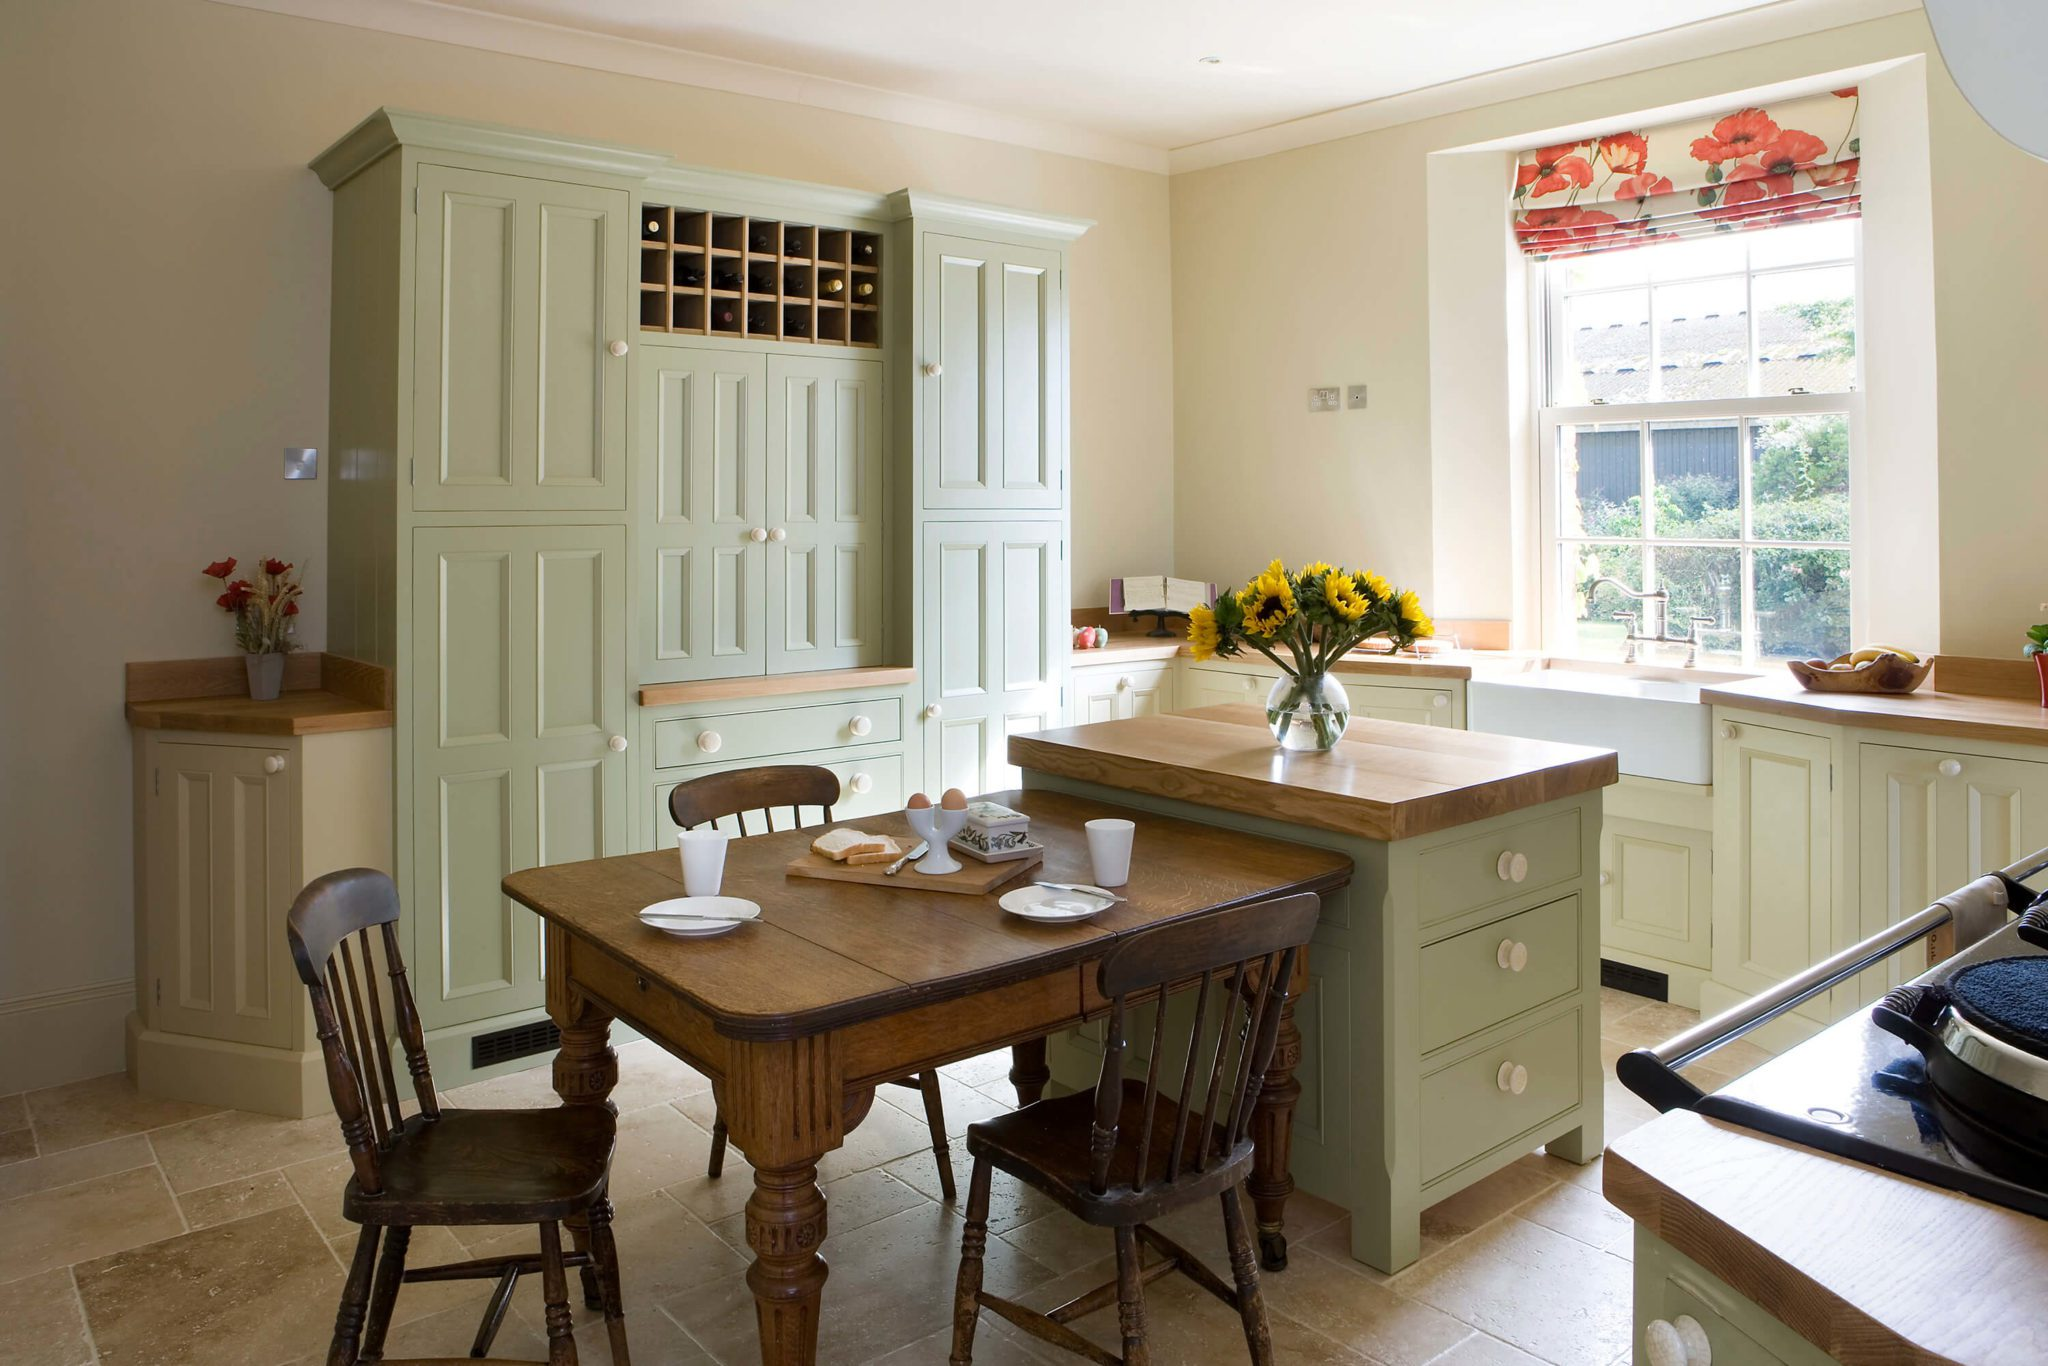 Handpainted Kitchen Furniture - Hill Farm Furniture